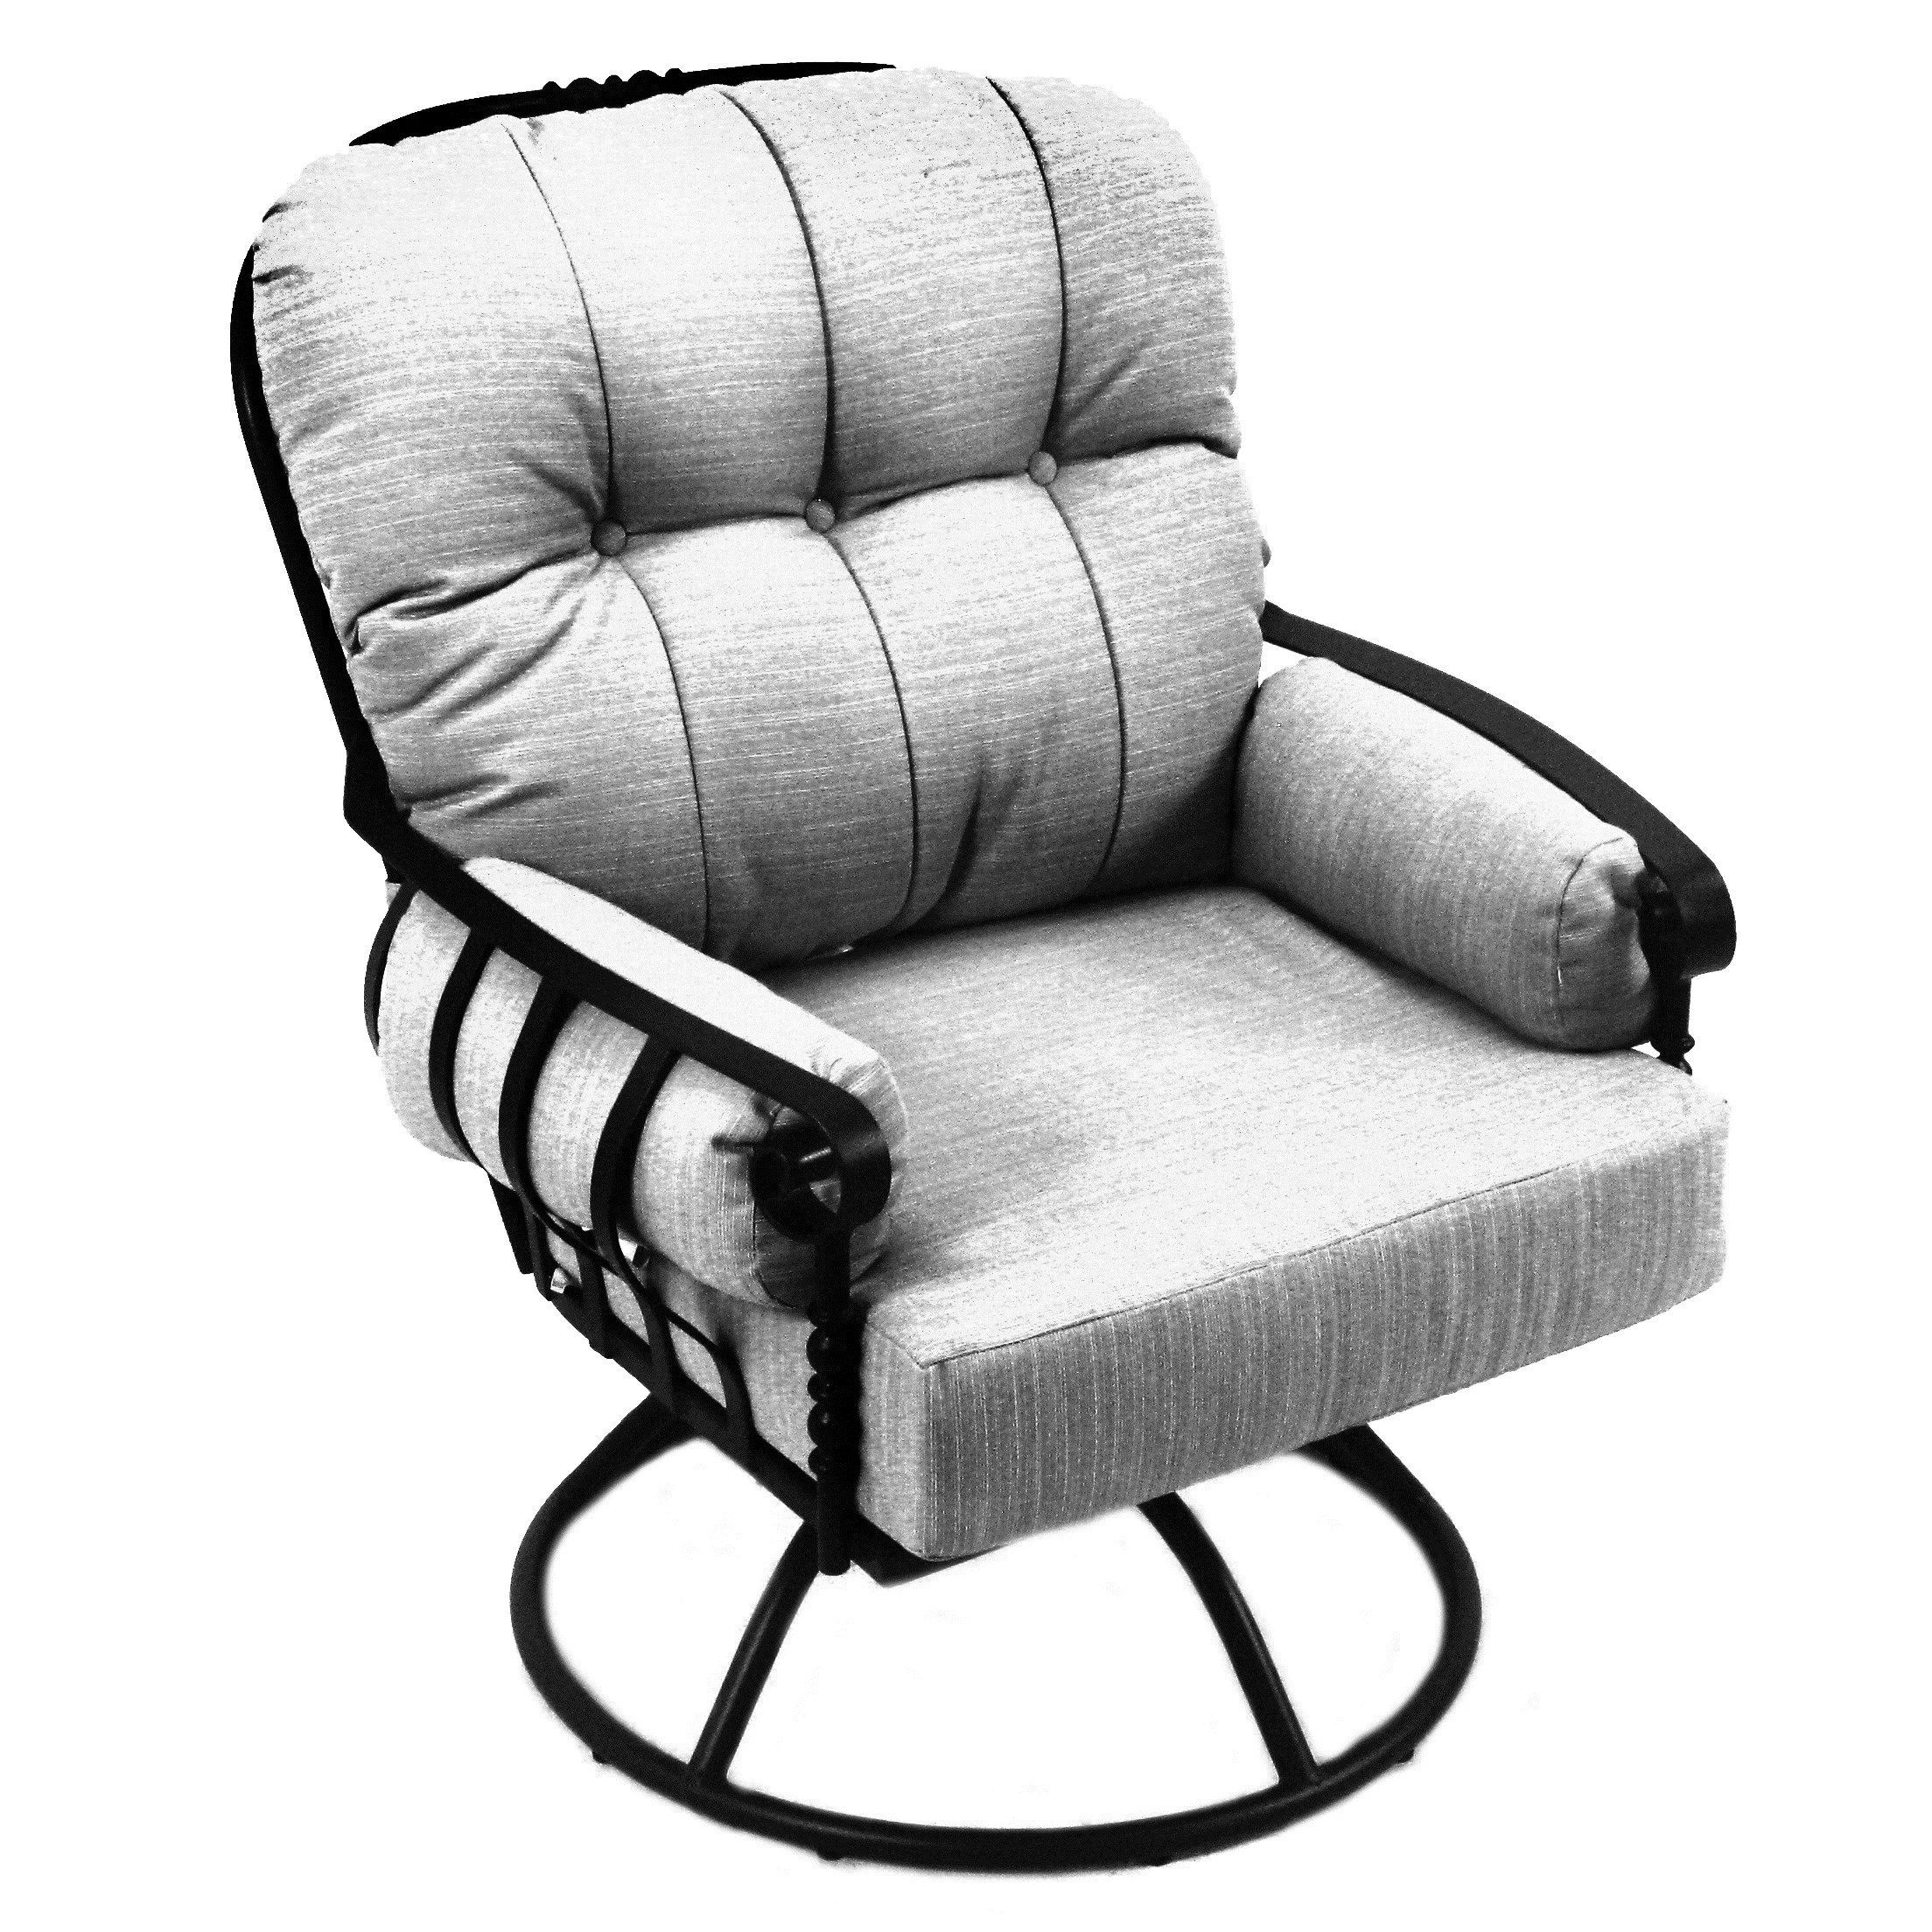 Meadowcraft Athens Swivel Rocking Chair With Cushions